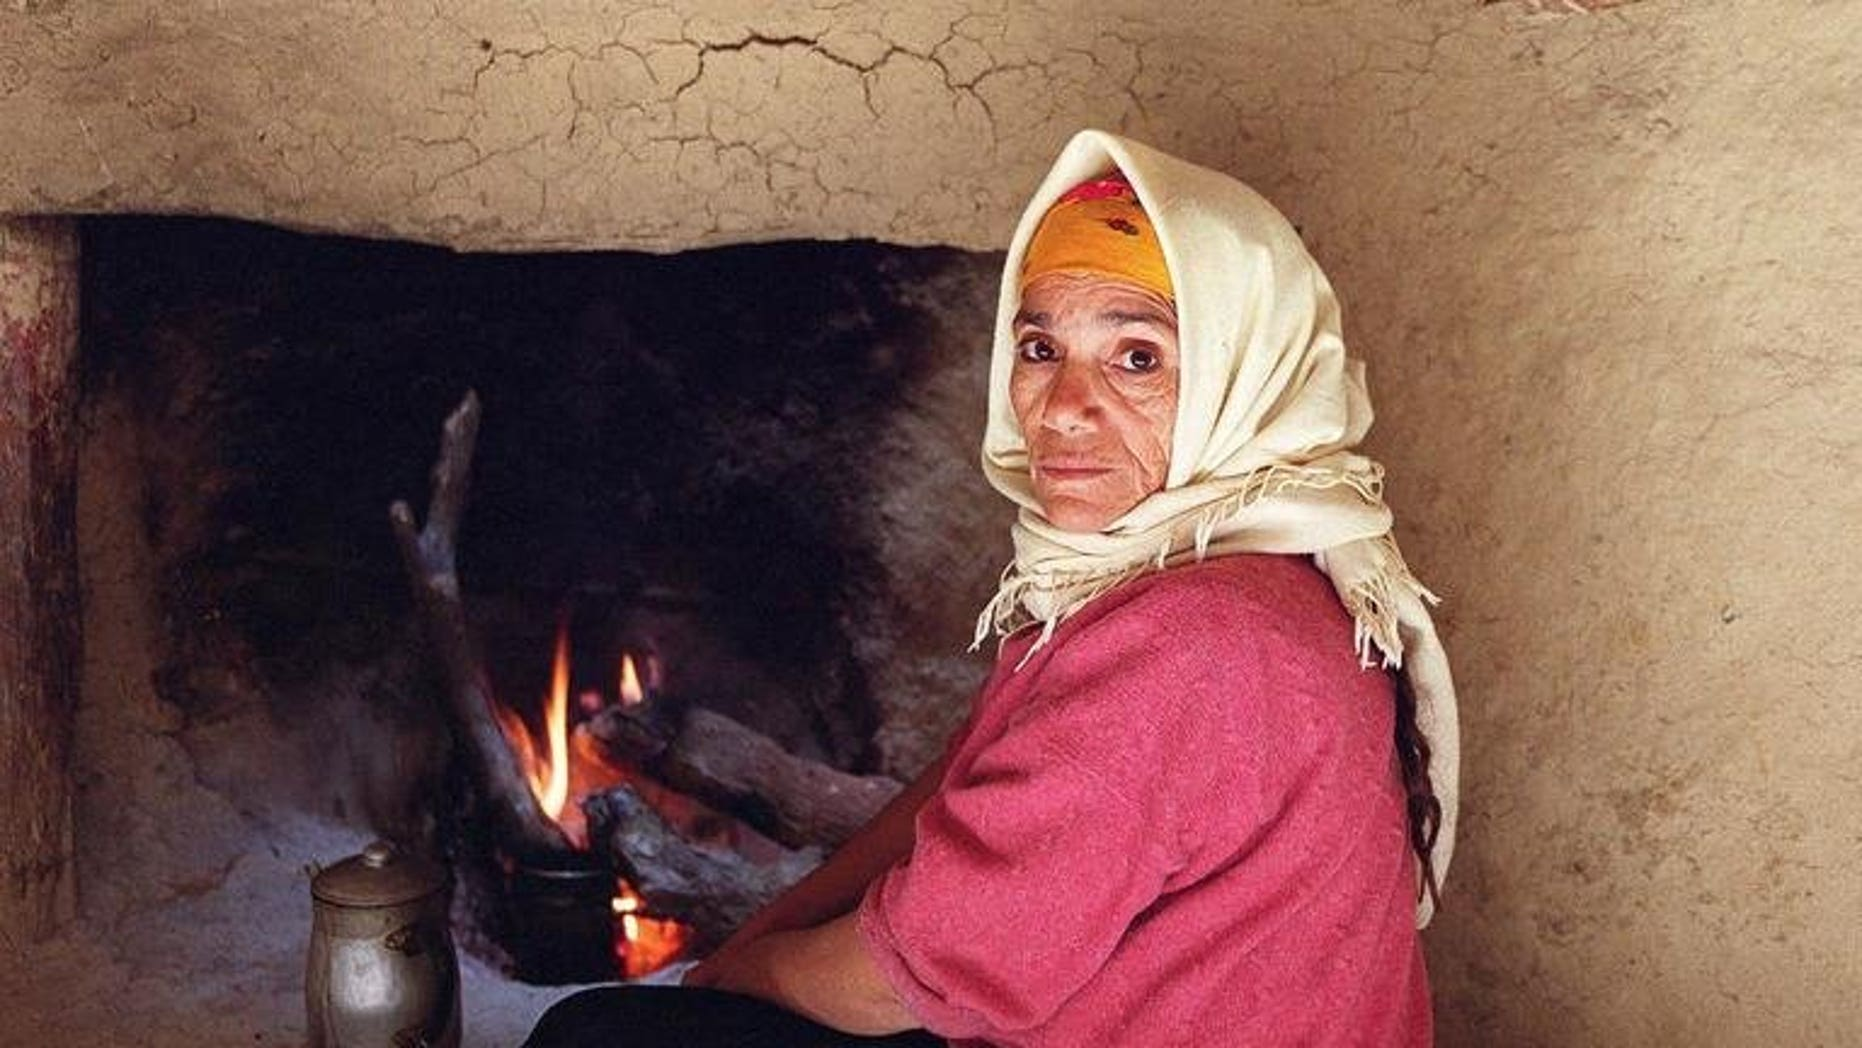 A woman who has never known gas or electricity warms herself 19 February 2001 by a fire in a makeshift home in Cherrata, 100 kms south of Algiers. General Electric Co. has won a $2.2 billion contract to provide turbines for six power plants in Algeria, state energy giant Sonatrach announced on Sunday.